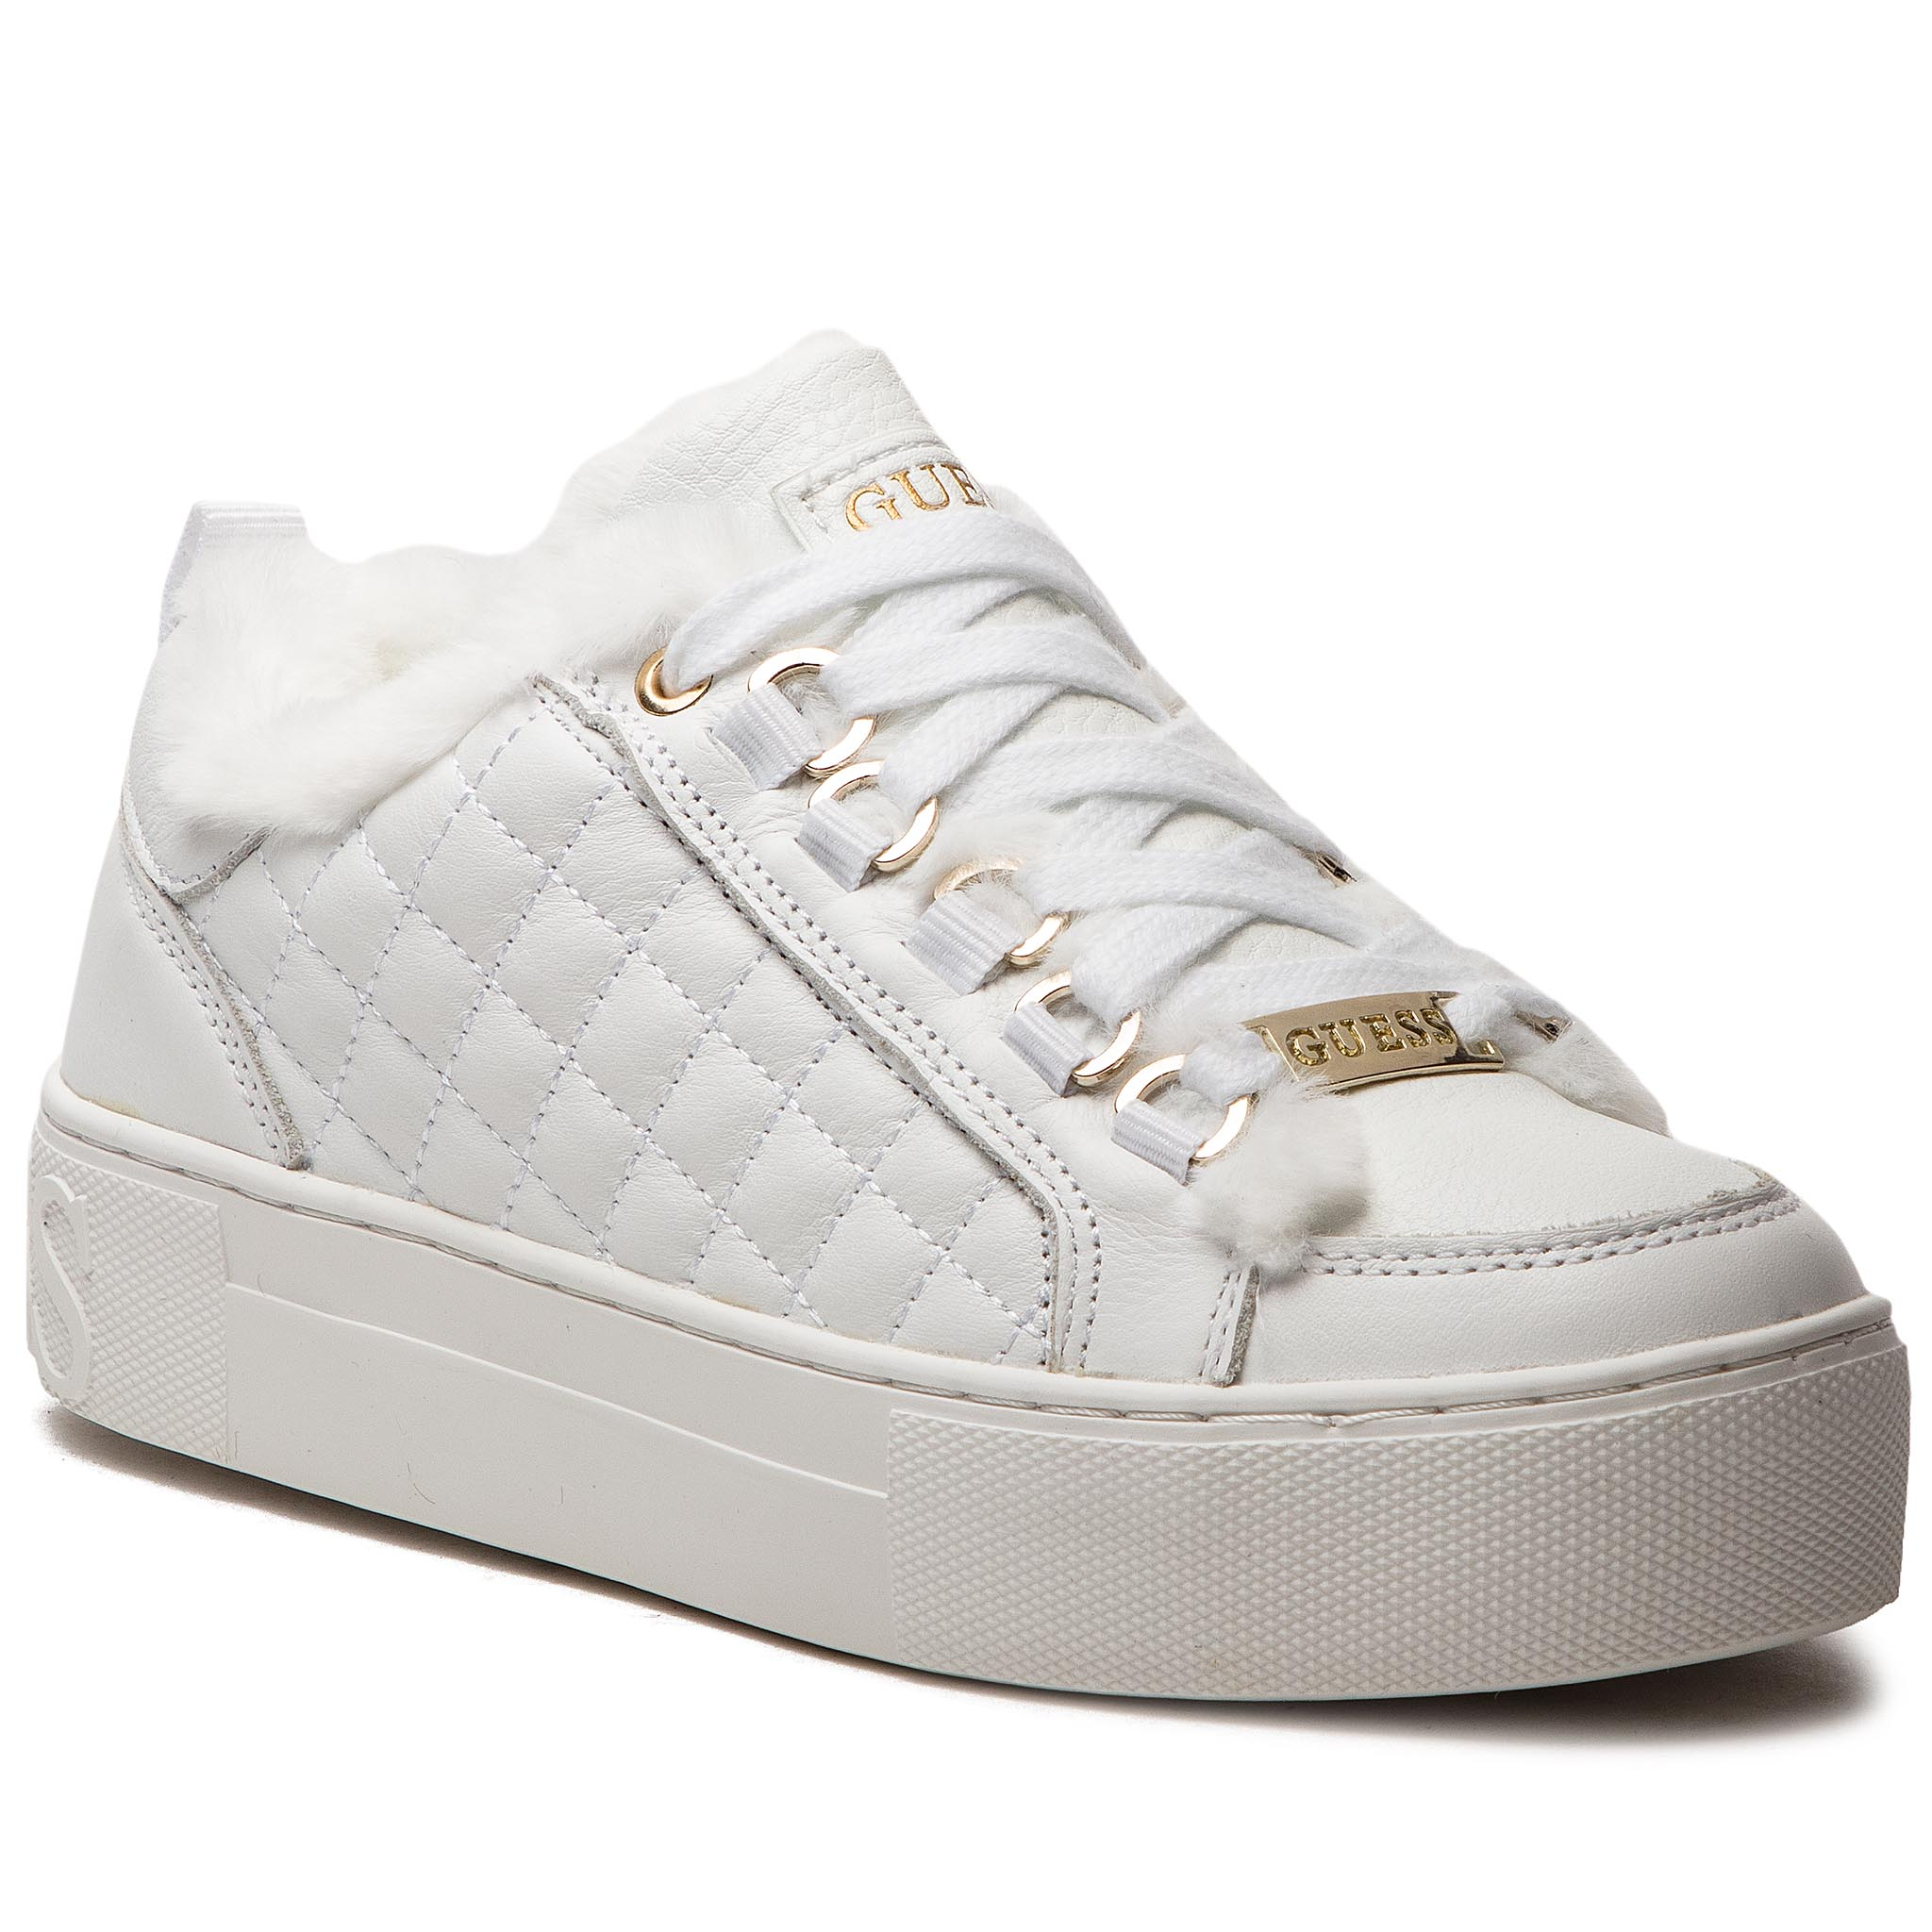 Sneakers GUESS - FLMET4 LEA12 WHITE